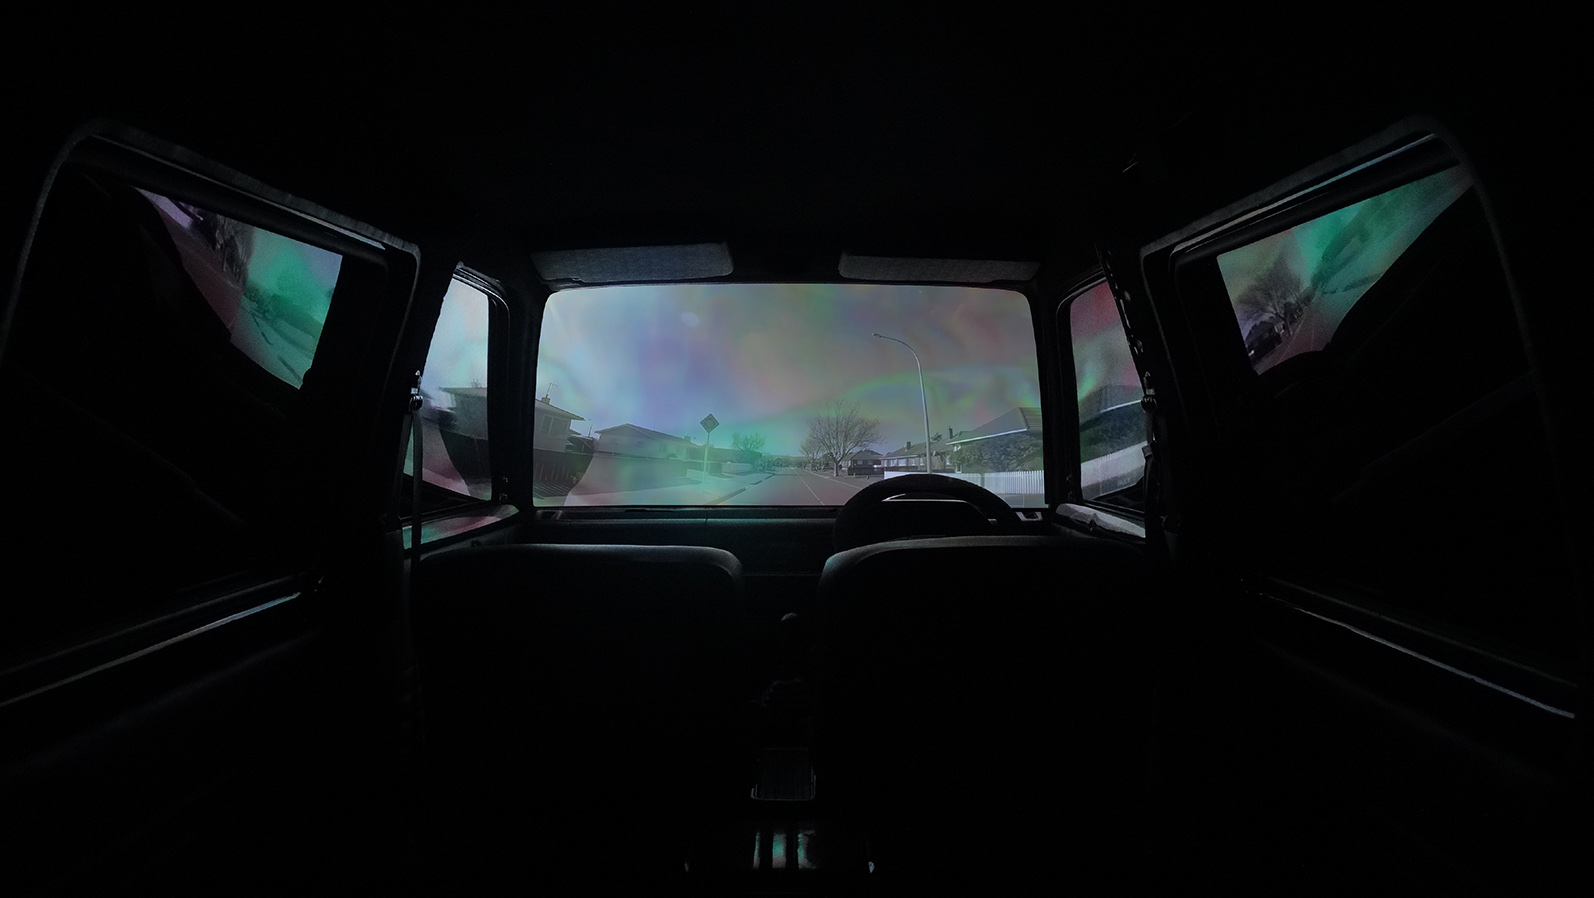 """Installation view of  TERRI TE TAU 's  Unwarranted and Unregistered , 2013,multimedia installation with music composed by Rob Thorne, dimensions variable, at """"Unwarranted and Unregistered: Te Āhua o te Hau ki Te Papaioea,"""" The Mangere Arts Centre, Auckland, 2015. Courtesy the artist."""